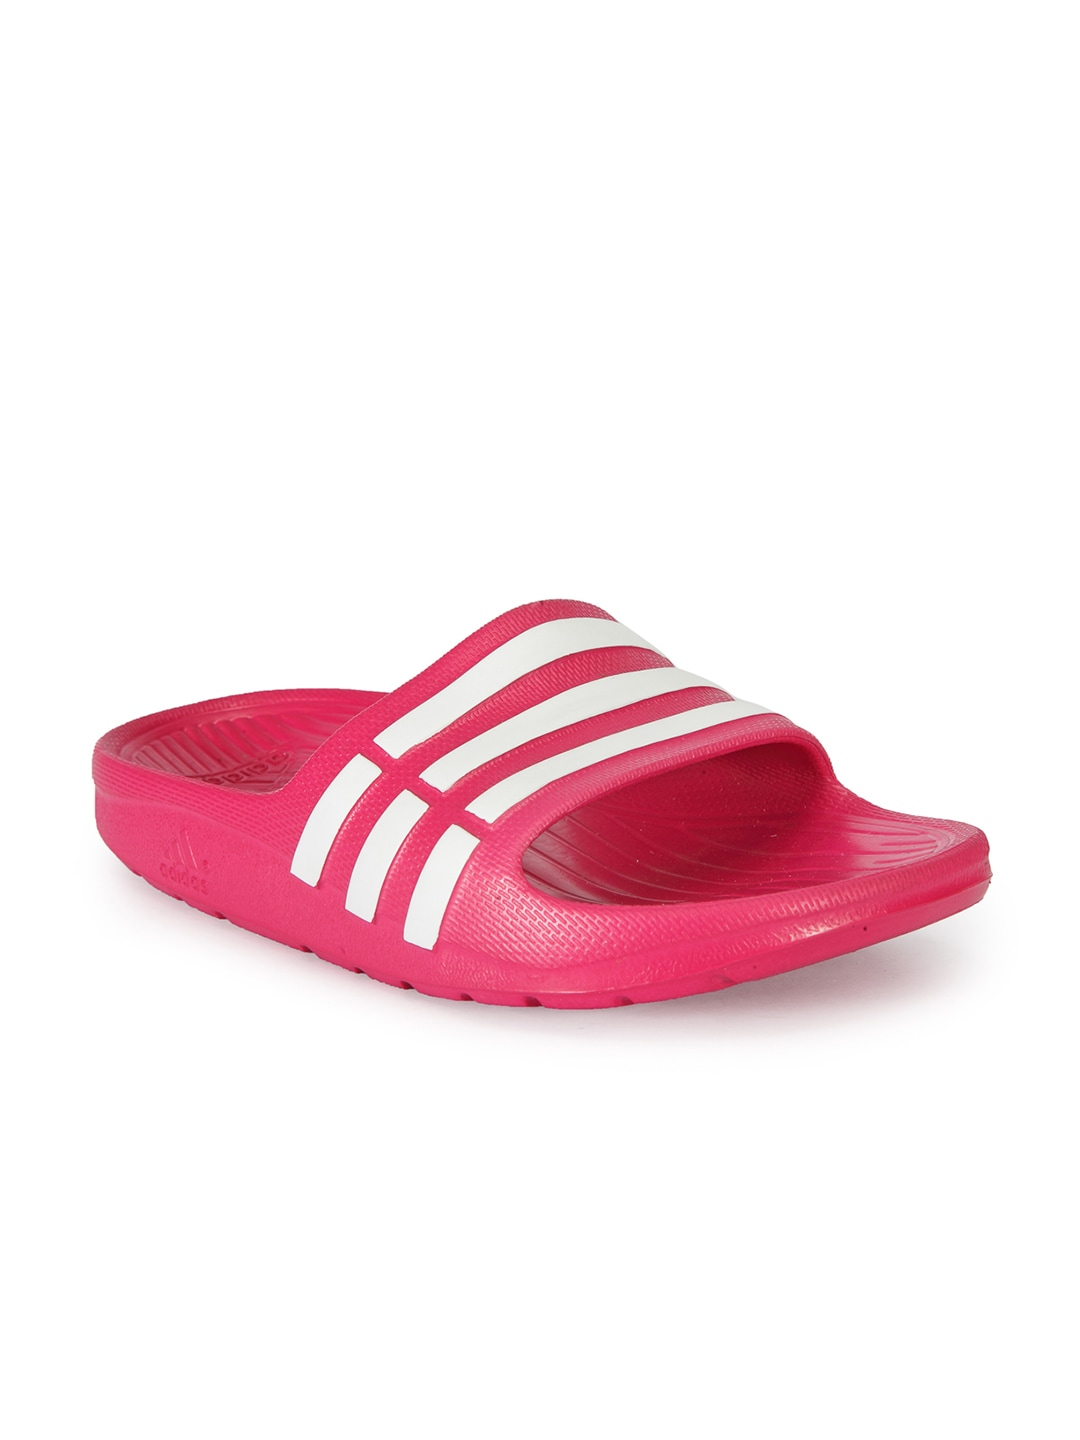 012eade92 Adidas Magenta   White DURAMO SLIDE Striped Flip Flops for girls in ...